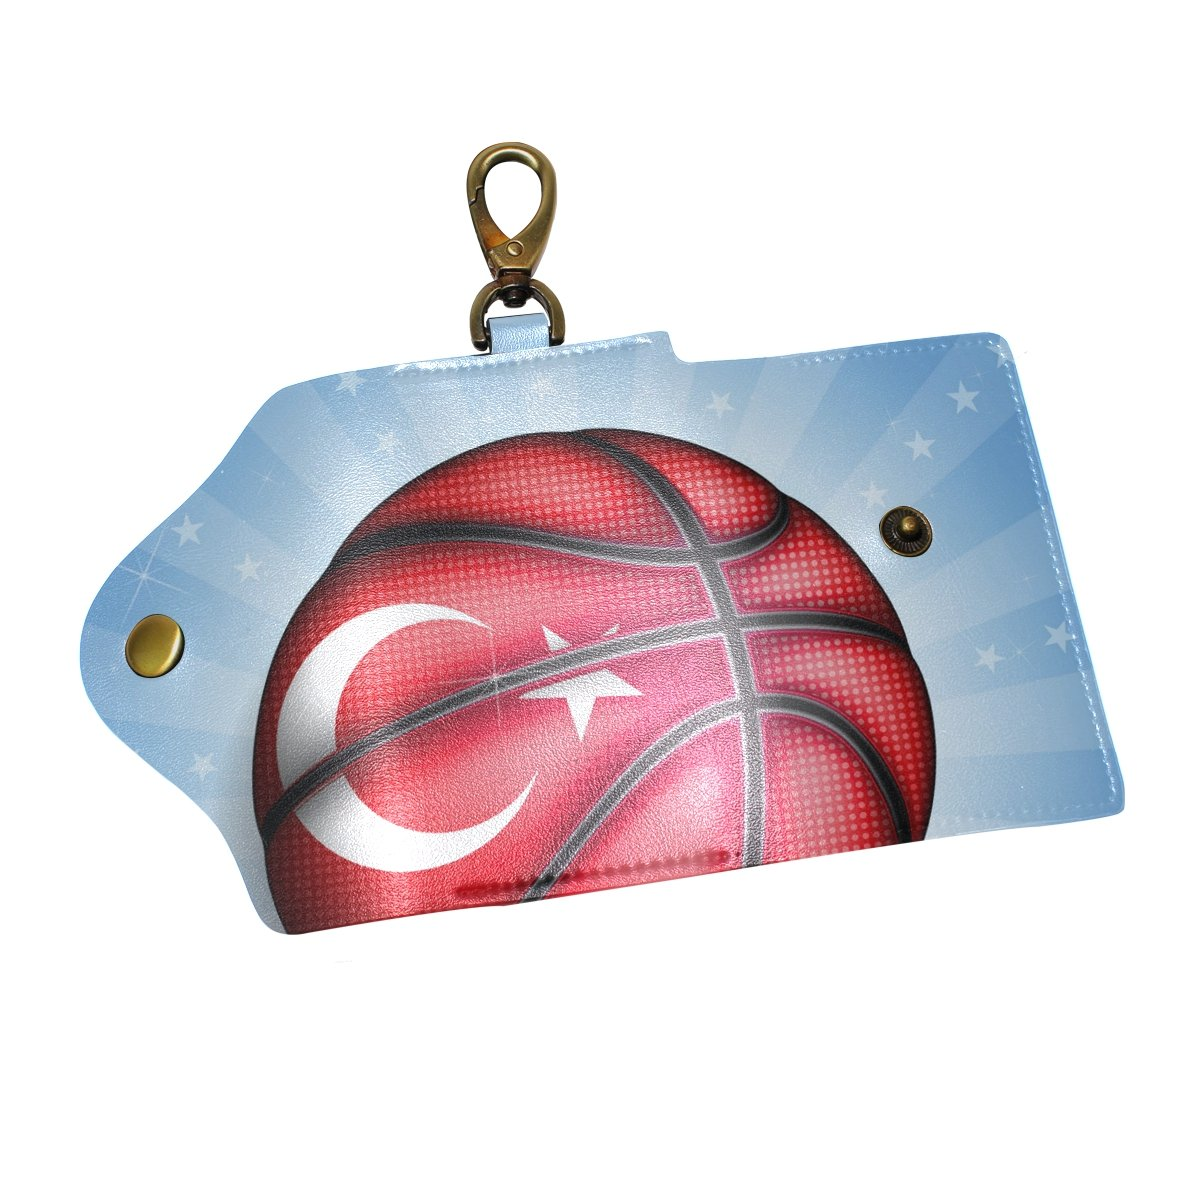 DEYYA Shiny Basketball Turkish Leather Key Case Wallets Unisex Keychain Key Holder with 6 Hooks Snap Closure